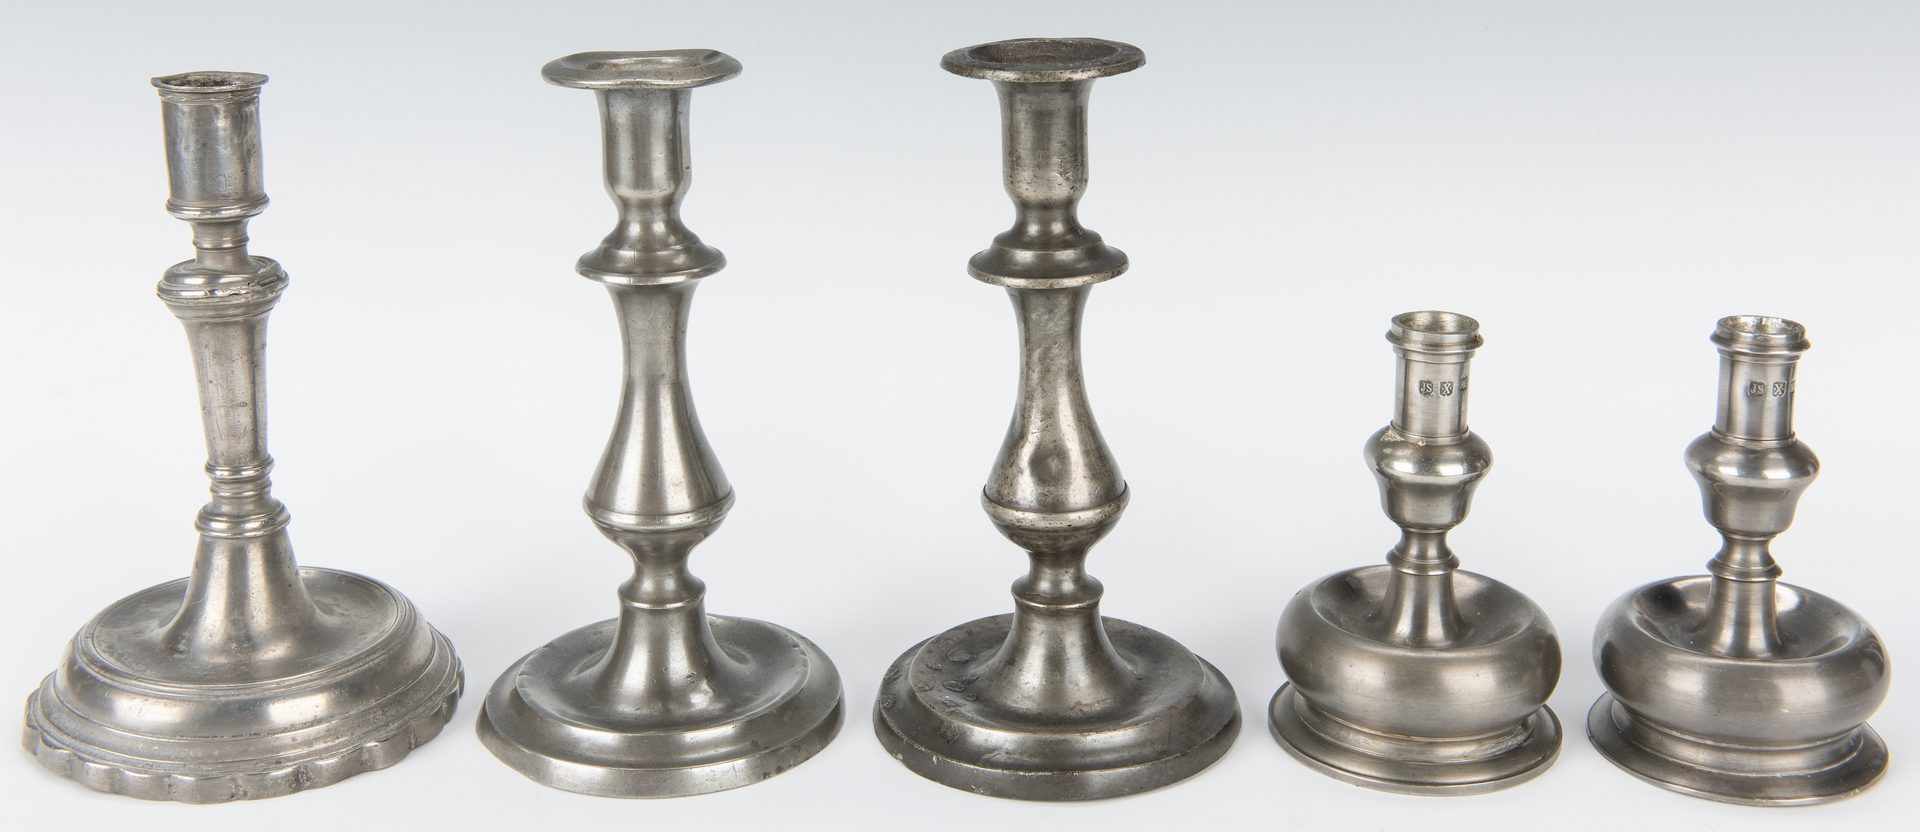 Lot 350: Group of 5 Pewter Candlesticks & 4 Wallpaper Boxes, New England